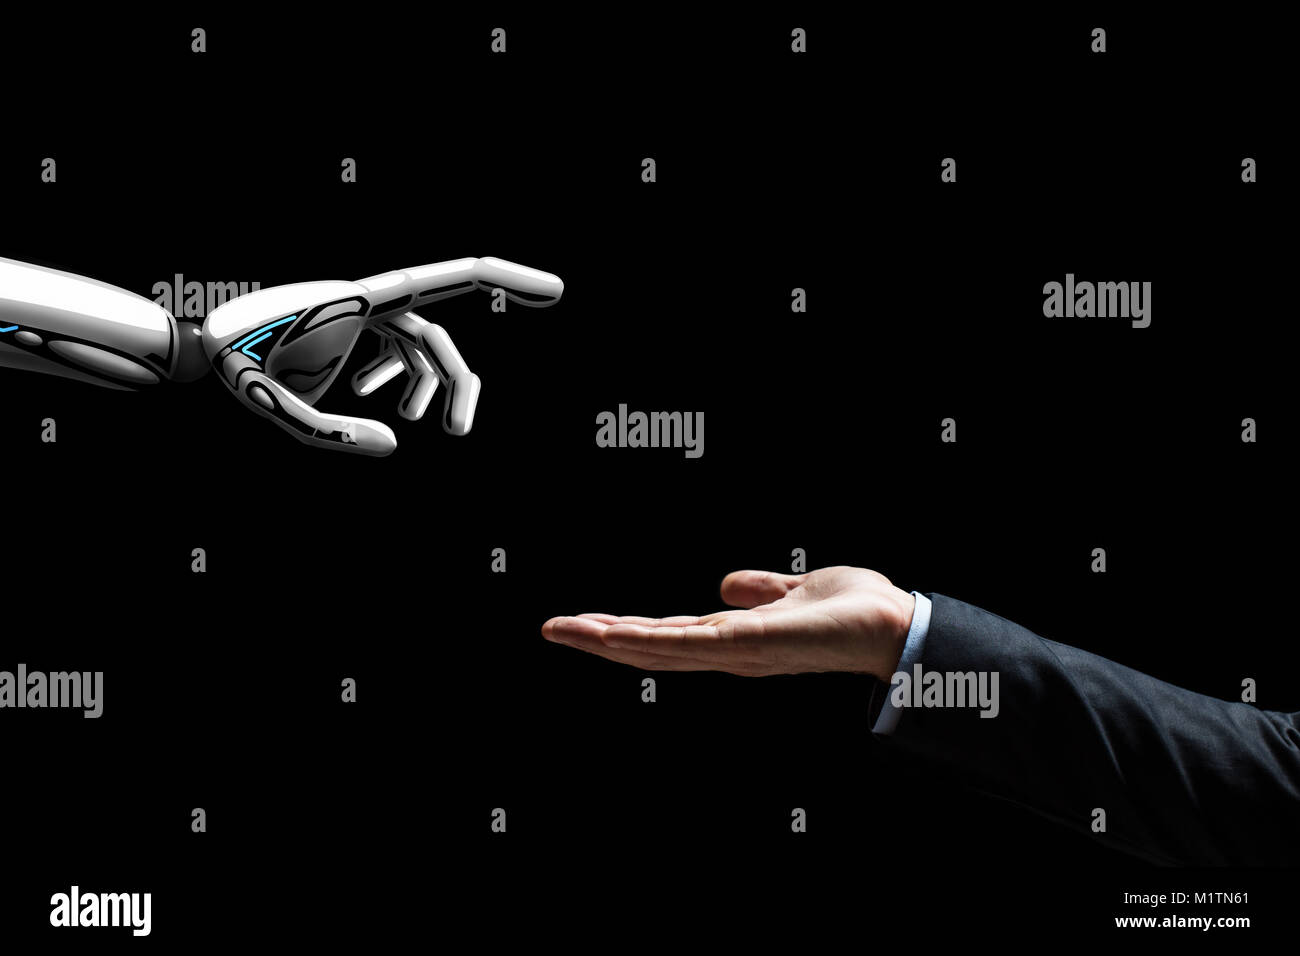 robot and human hand on black background - Stock Image